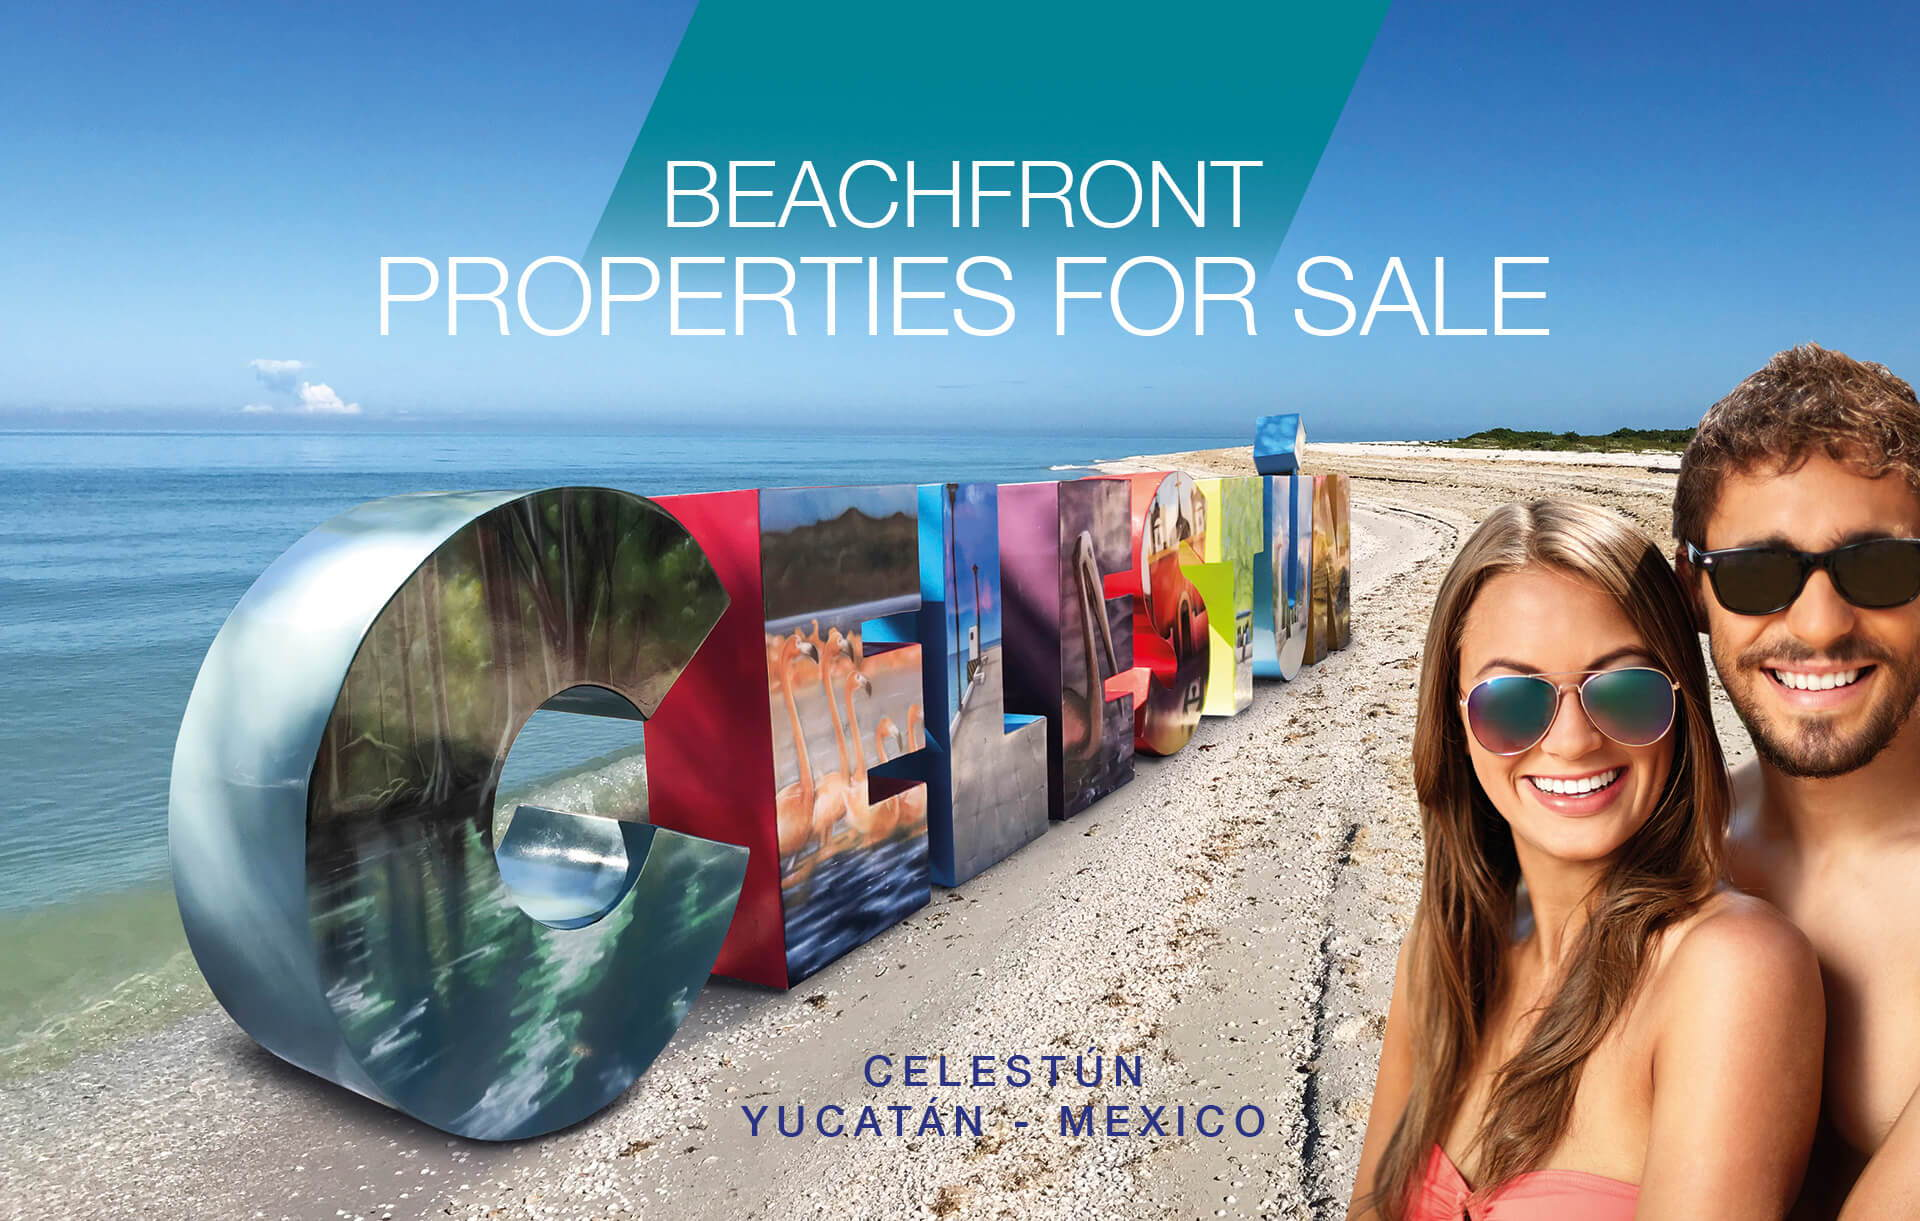 Beach front properties for sale in Celestun Yucatan Mexico